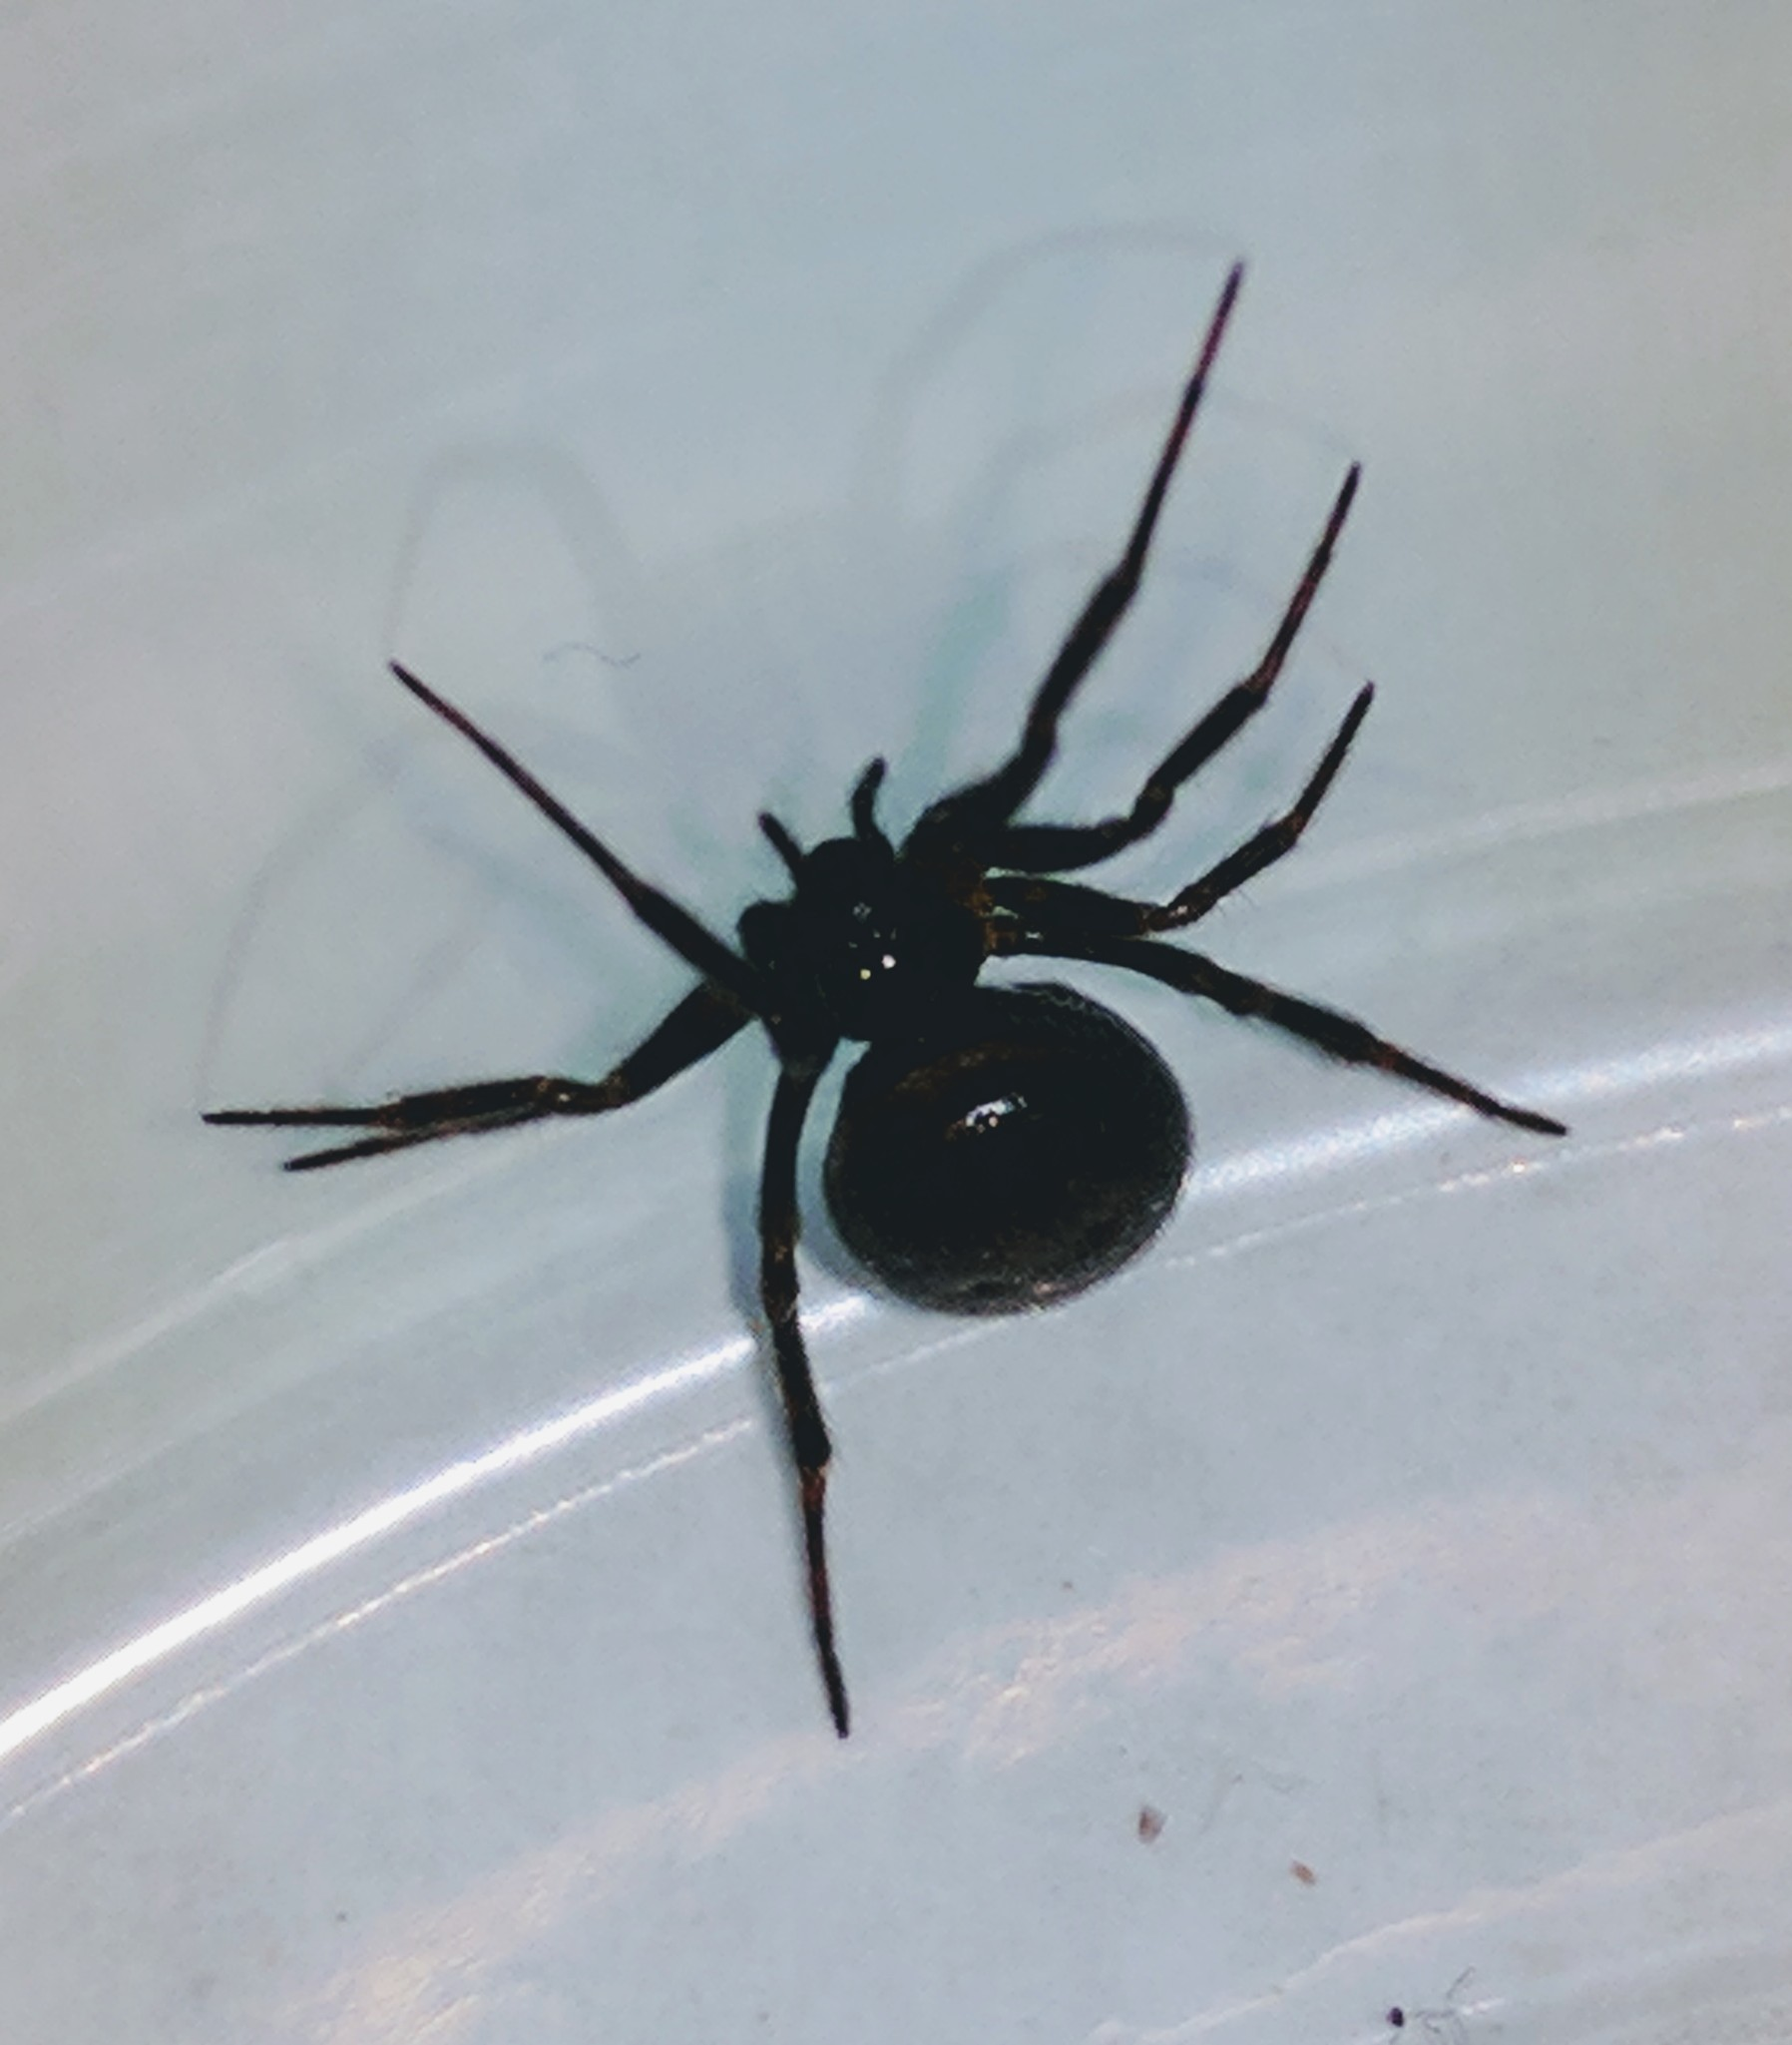 We can treat for spiders on the interior of the home to help the problem.